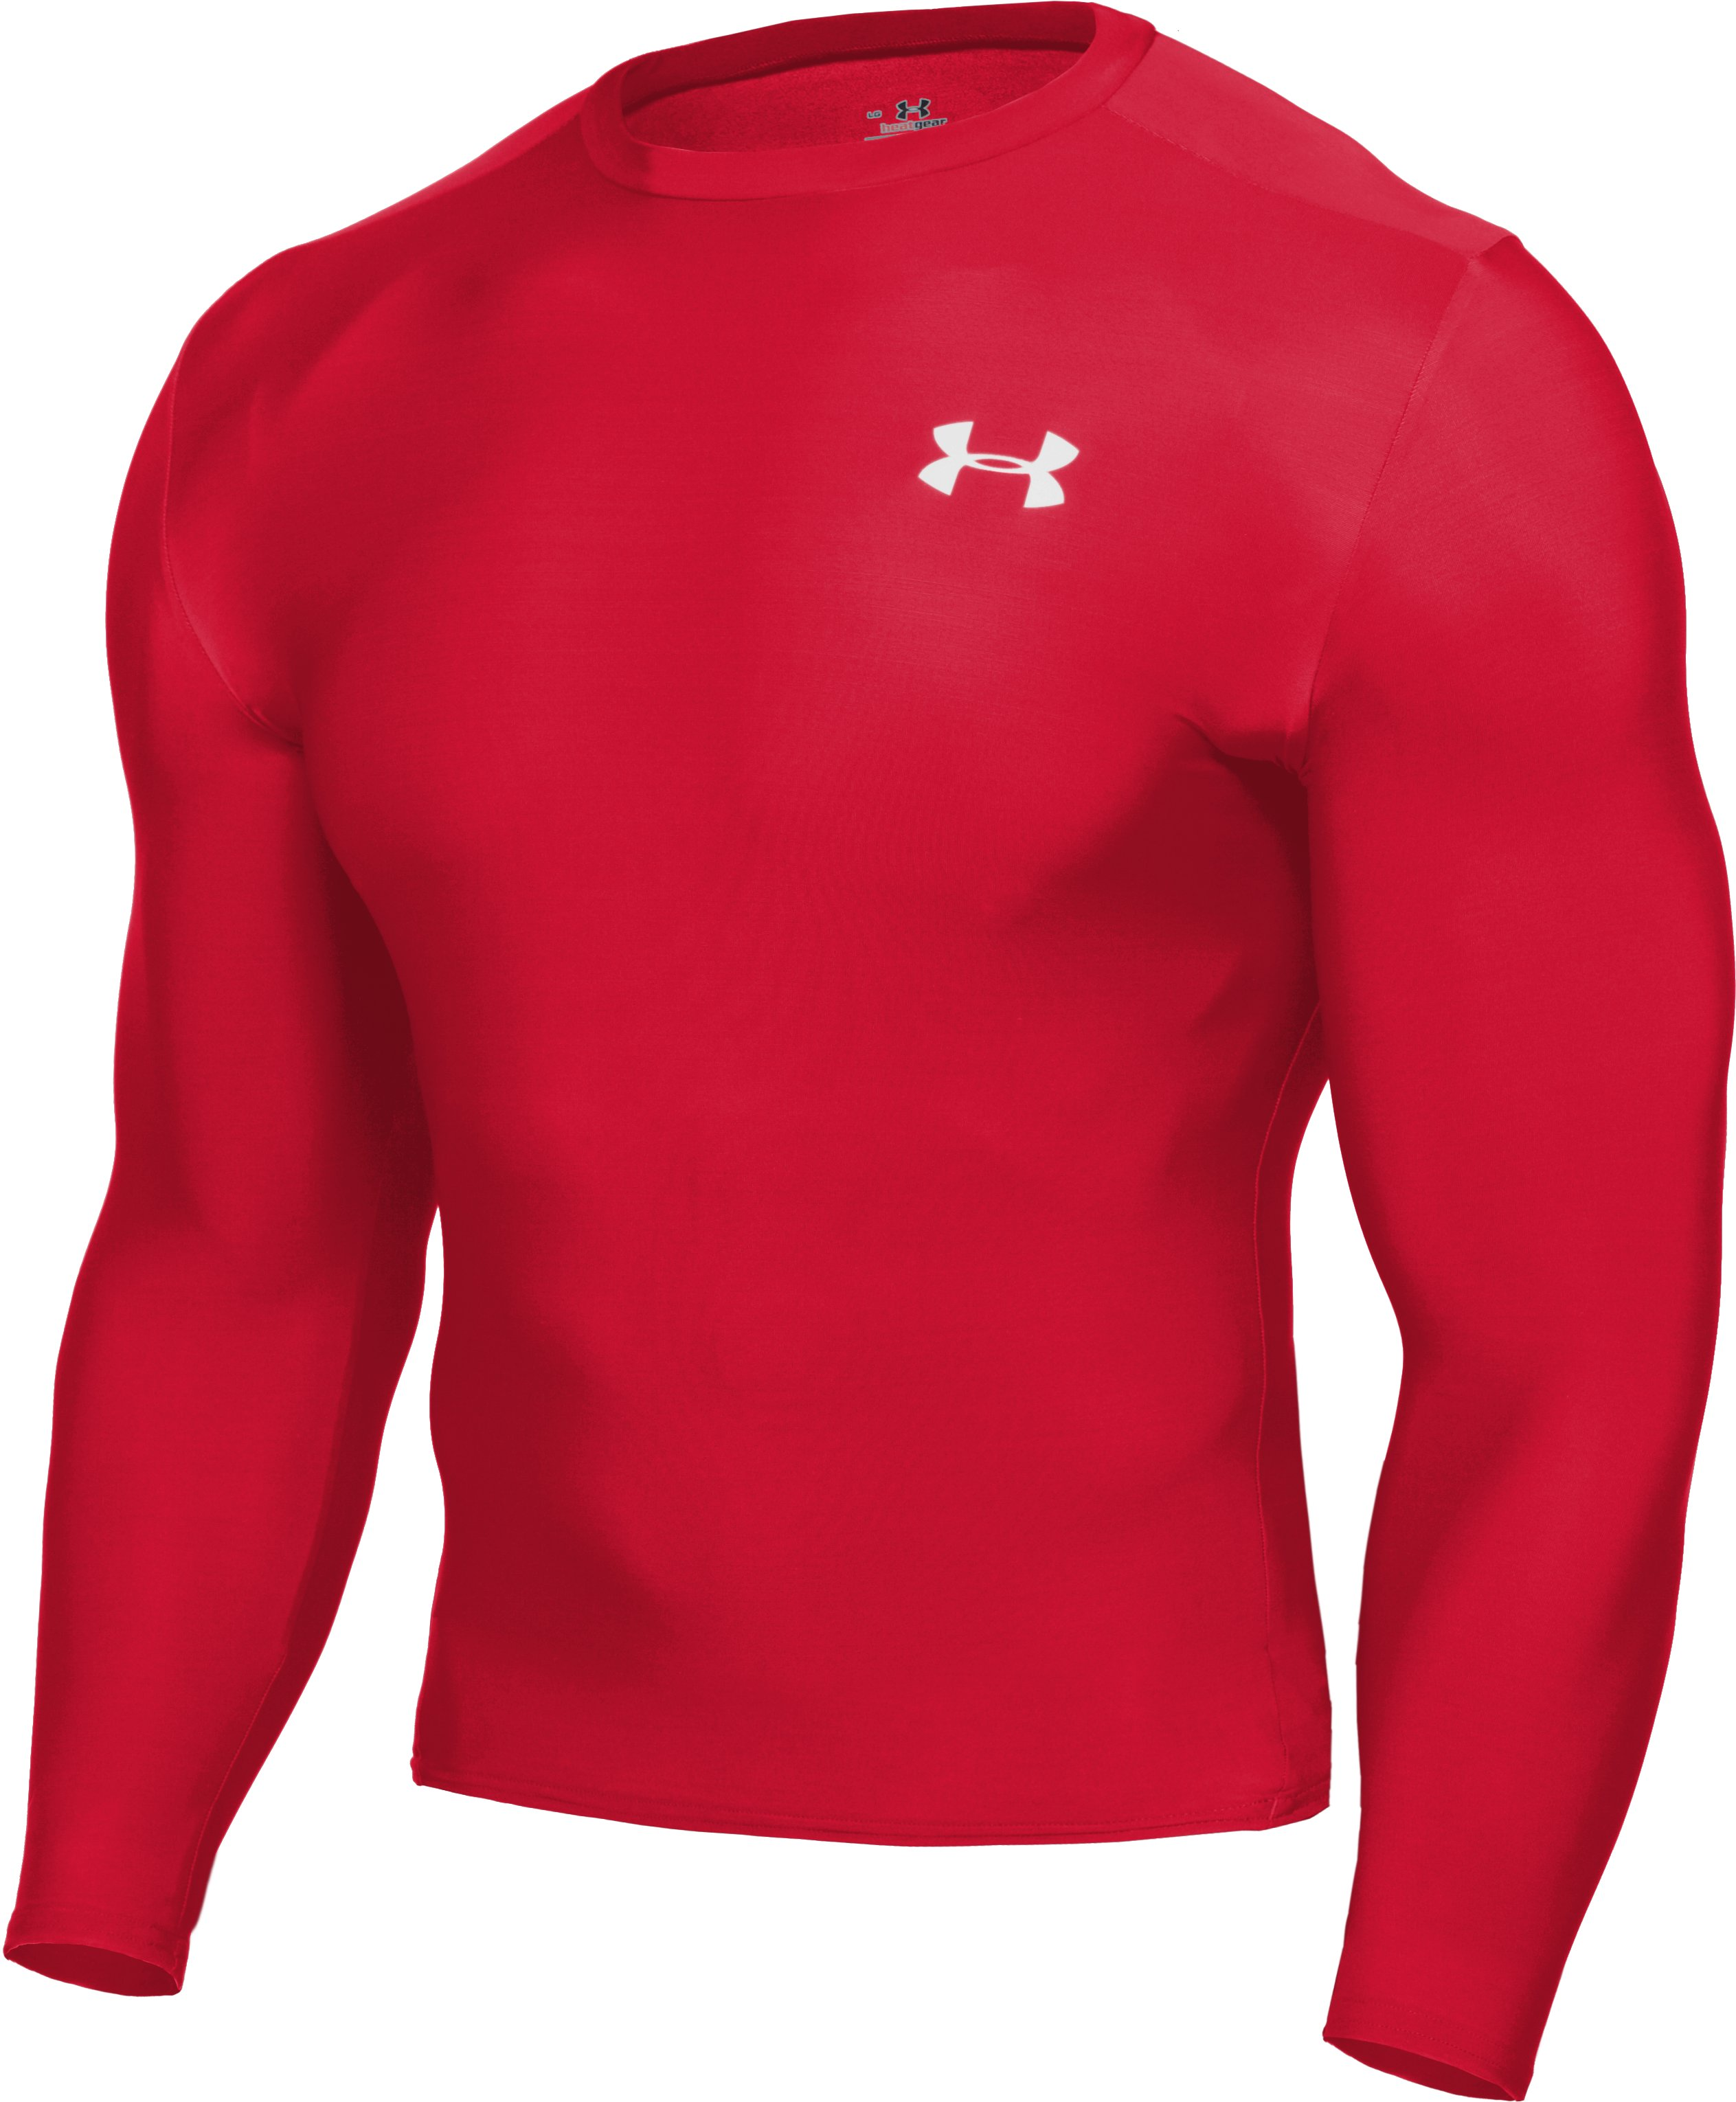 Men's HeatGear® Compression Long Sleeve T-Shirt, Red, undefined